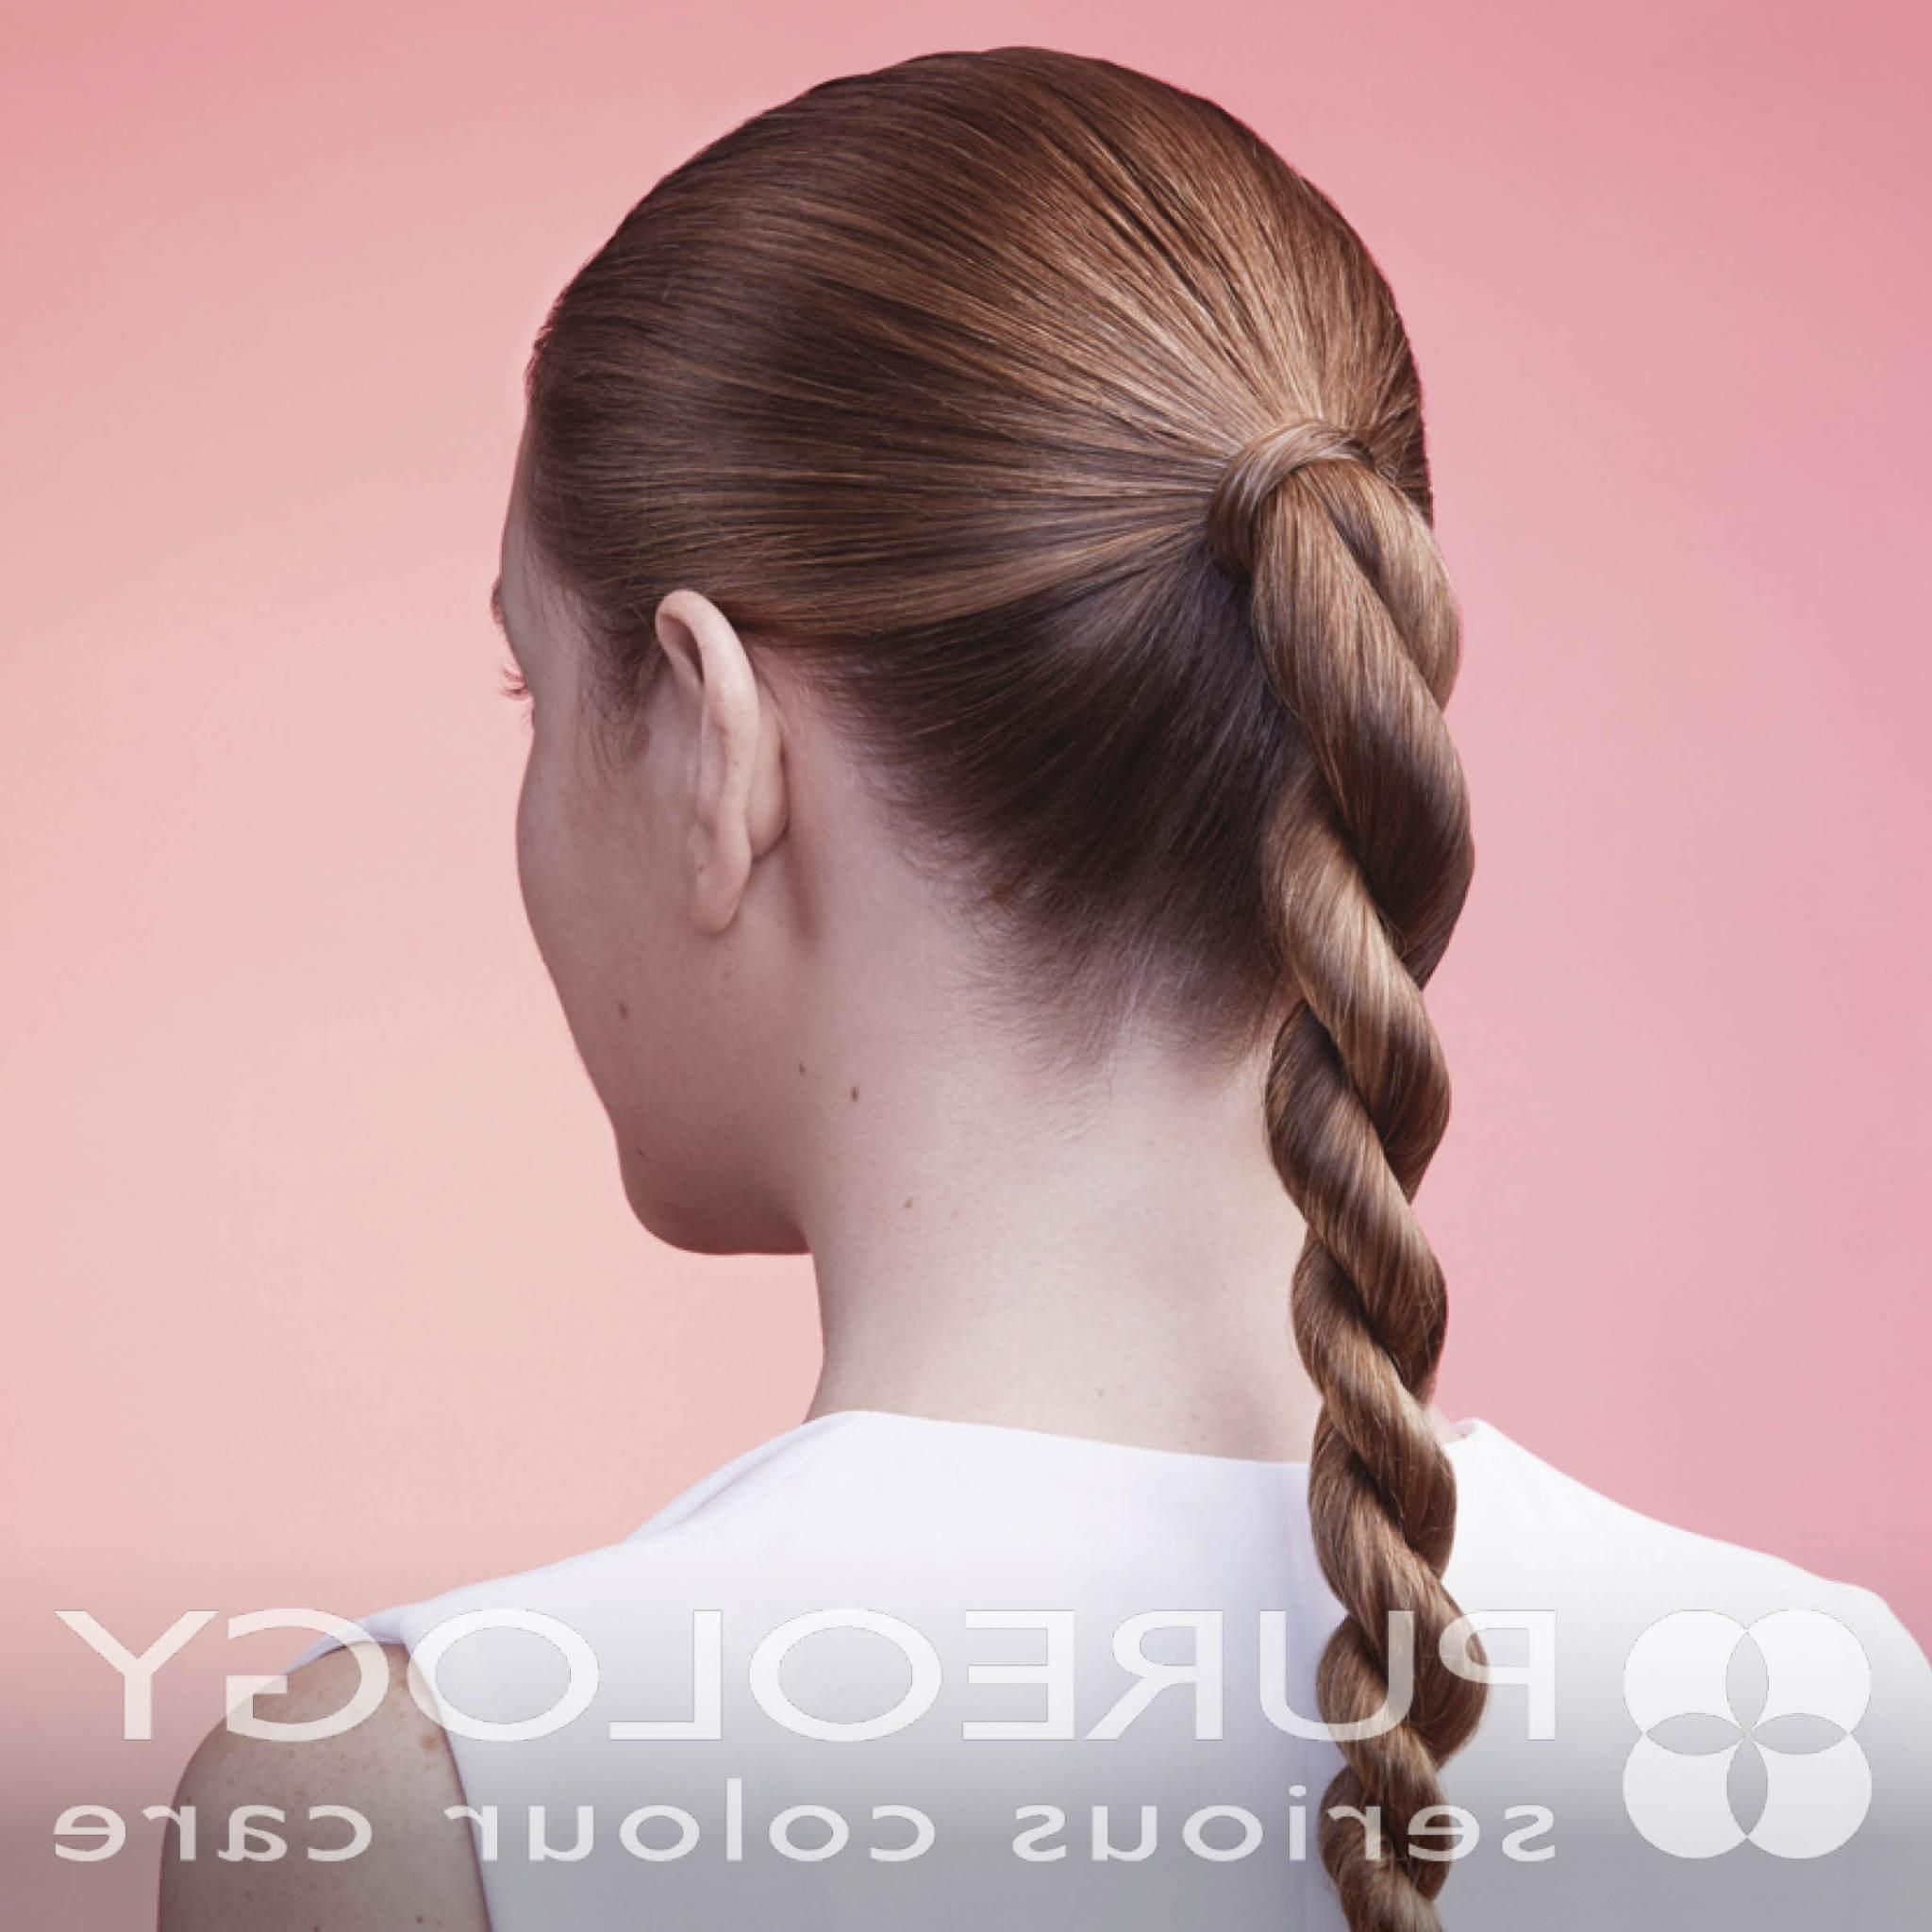 7 Gym Hairstyles That Are Actually Cute & Easy To Do – Pureology With Regard To 2020 Intricate Rope Braid Ponytail Hairstyles (Gallery 9 of 20)